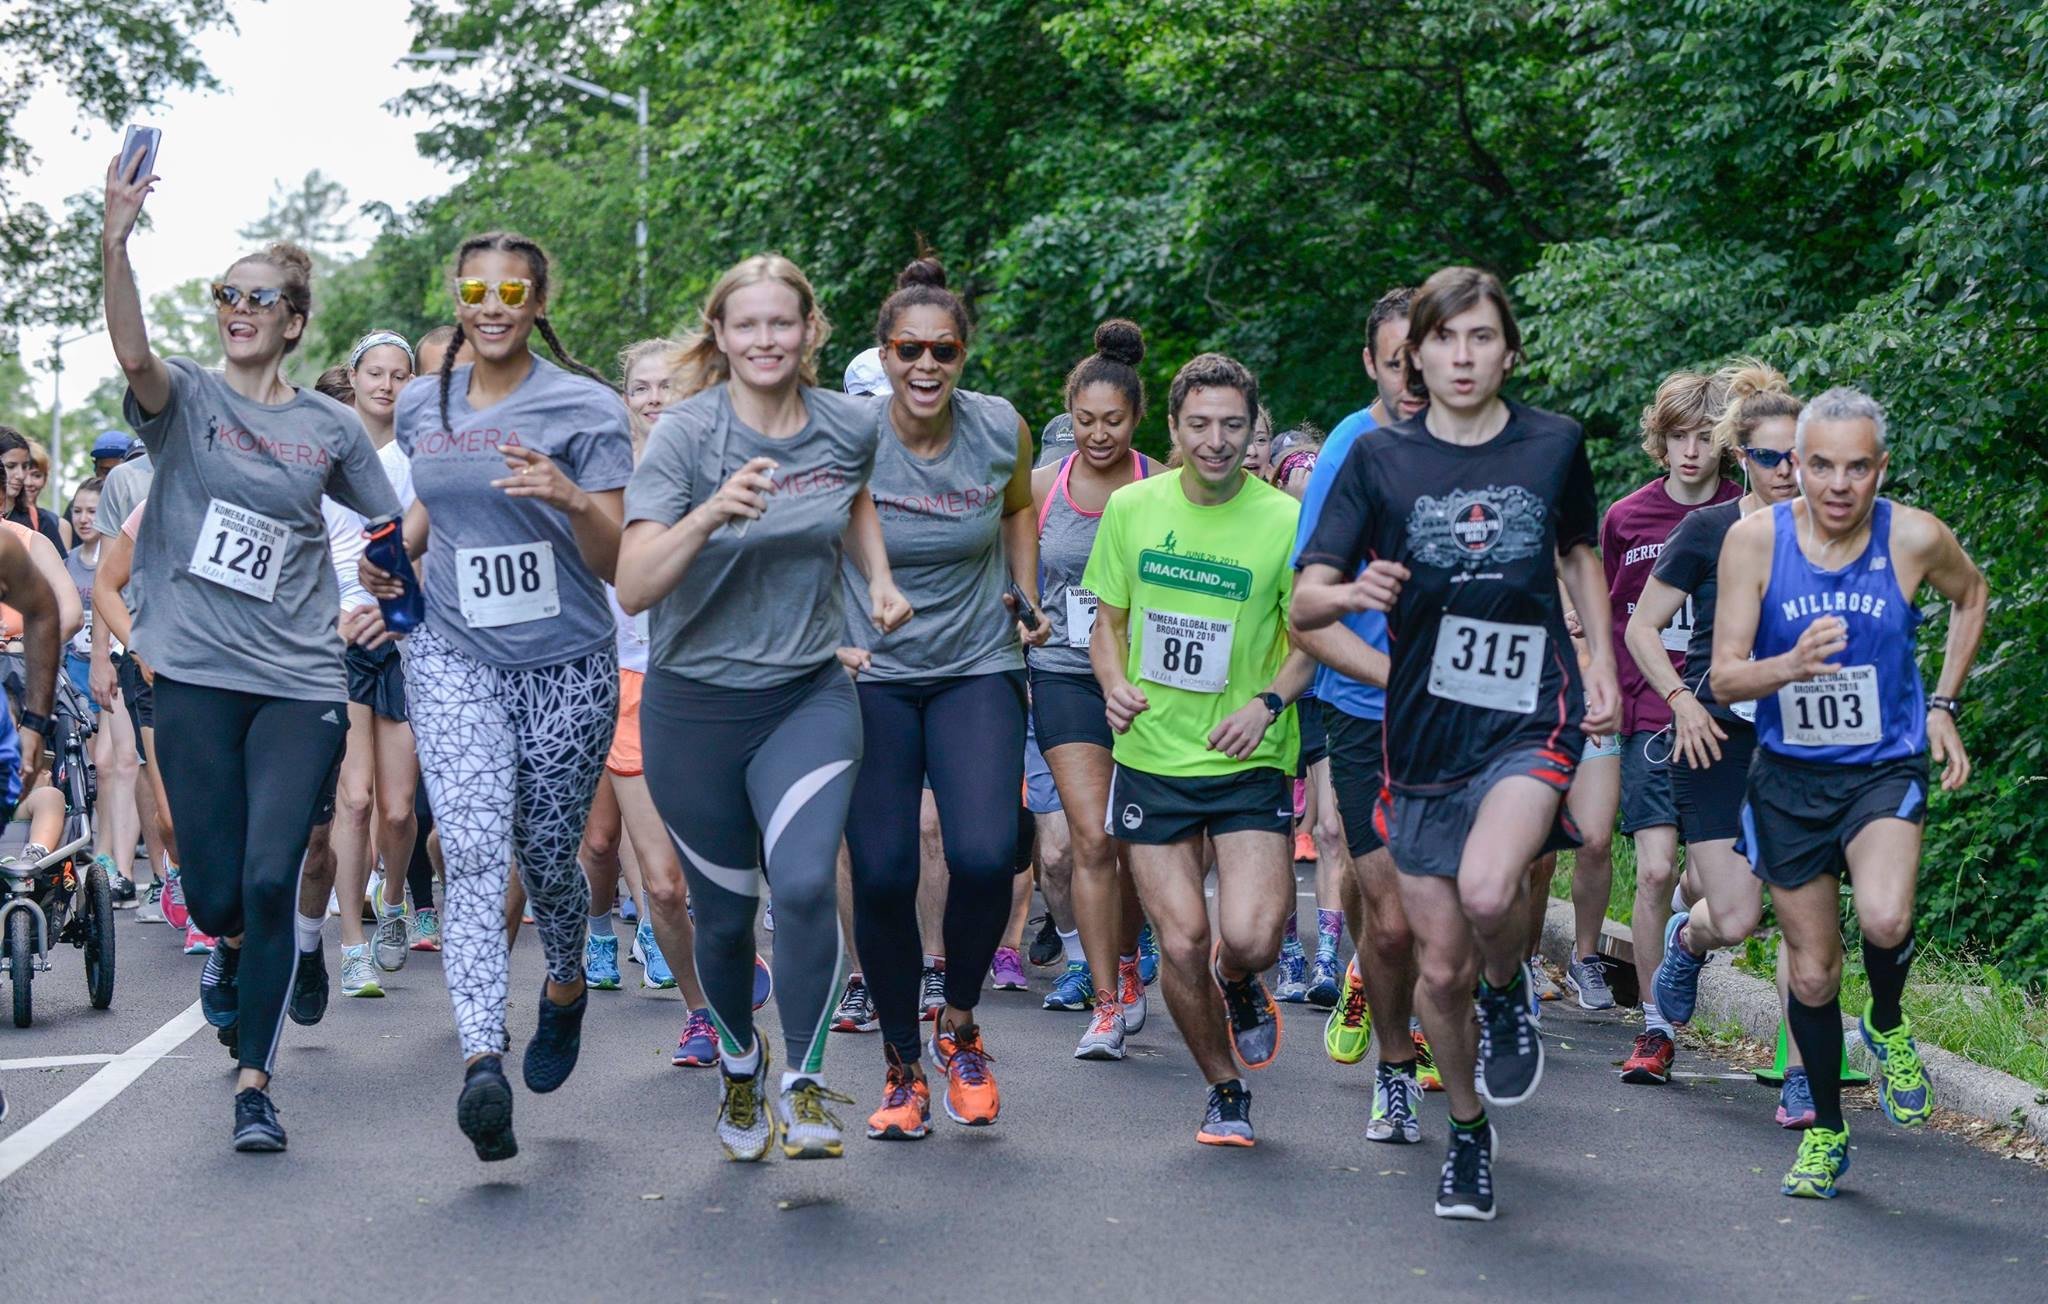 Run the World - What began as a fun run for girls in a small village in Rwanda has developed into a global run for girls' empowerment around the world! The Komera Global Run is a movement of people coming together to run in support of girls' education and empowerment. Each year Komera hosts fun runs in cities globally, including Boston, New York, San Francisco, Vancouver and Rwanda! Join us in your city for a run, or get your friends together and host your own run! Once you've registered to run, launch your fundraising page to race & raise for Komera. Set a goal, share on social and spread the Komera love!